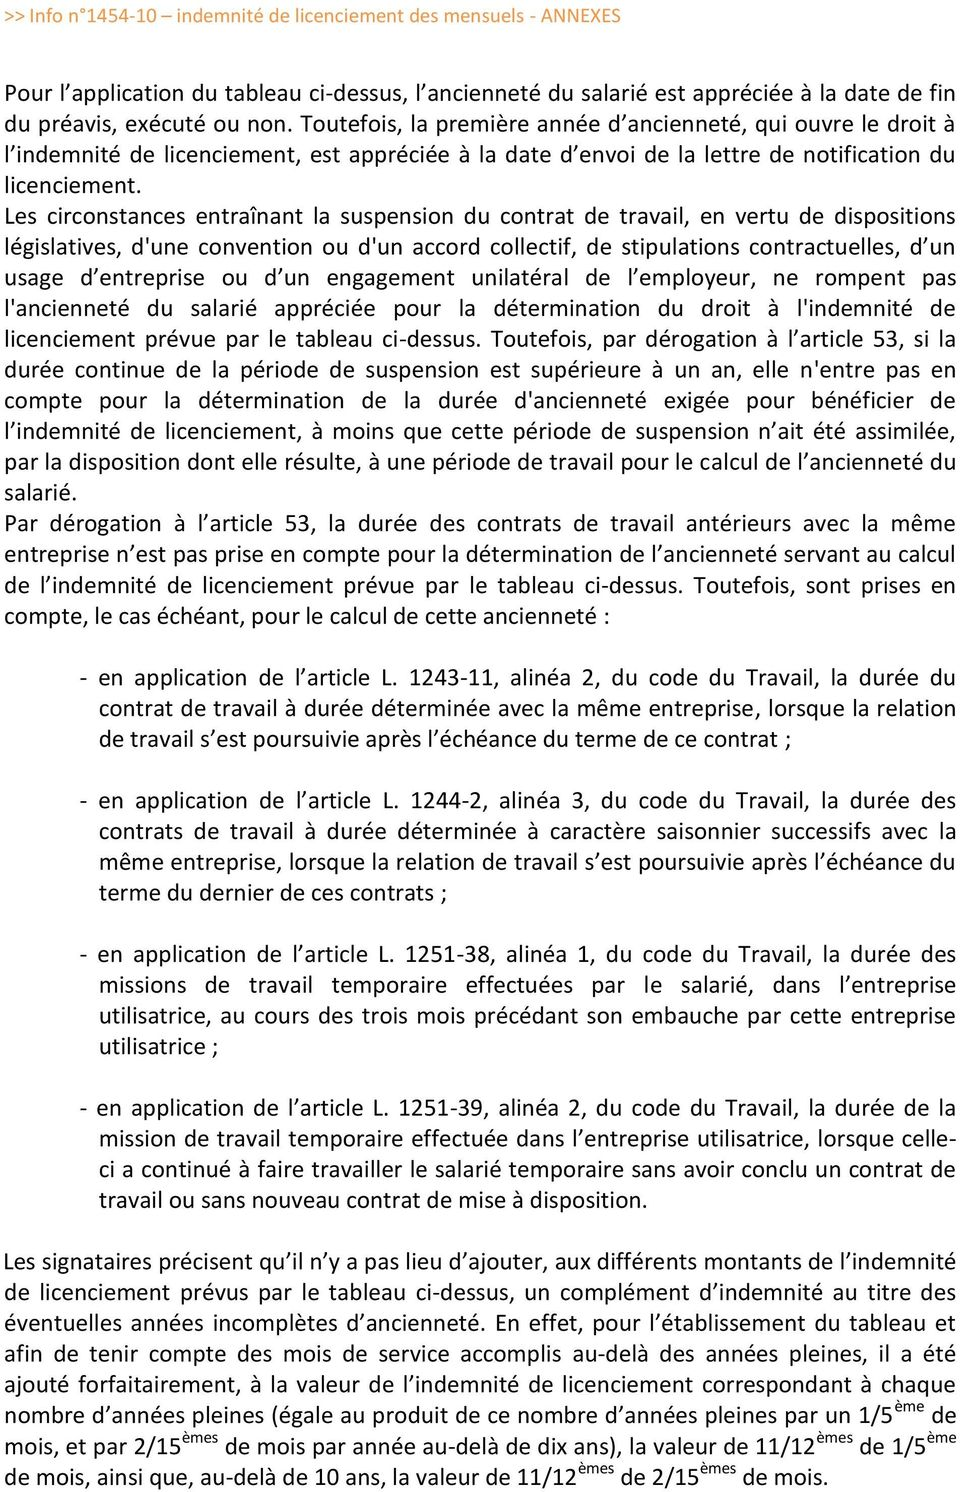 Les circonstances entraînant la suspension du contrat de travail, en vertu de dispositions législatives, d'une convention ou d'un accord collectif, de stipulations contractuelles, d un usage d